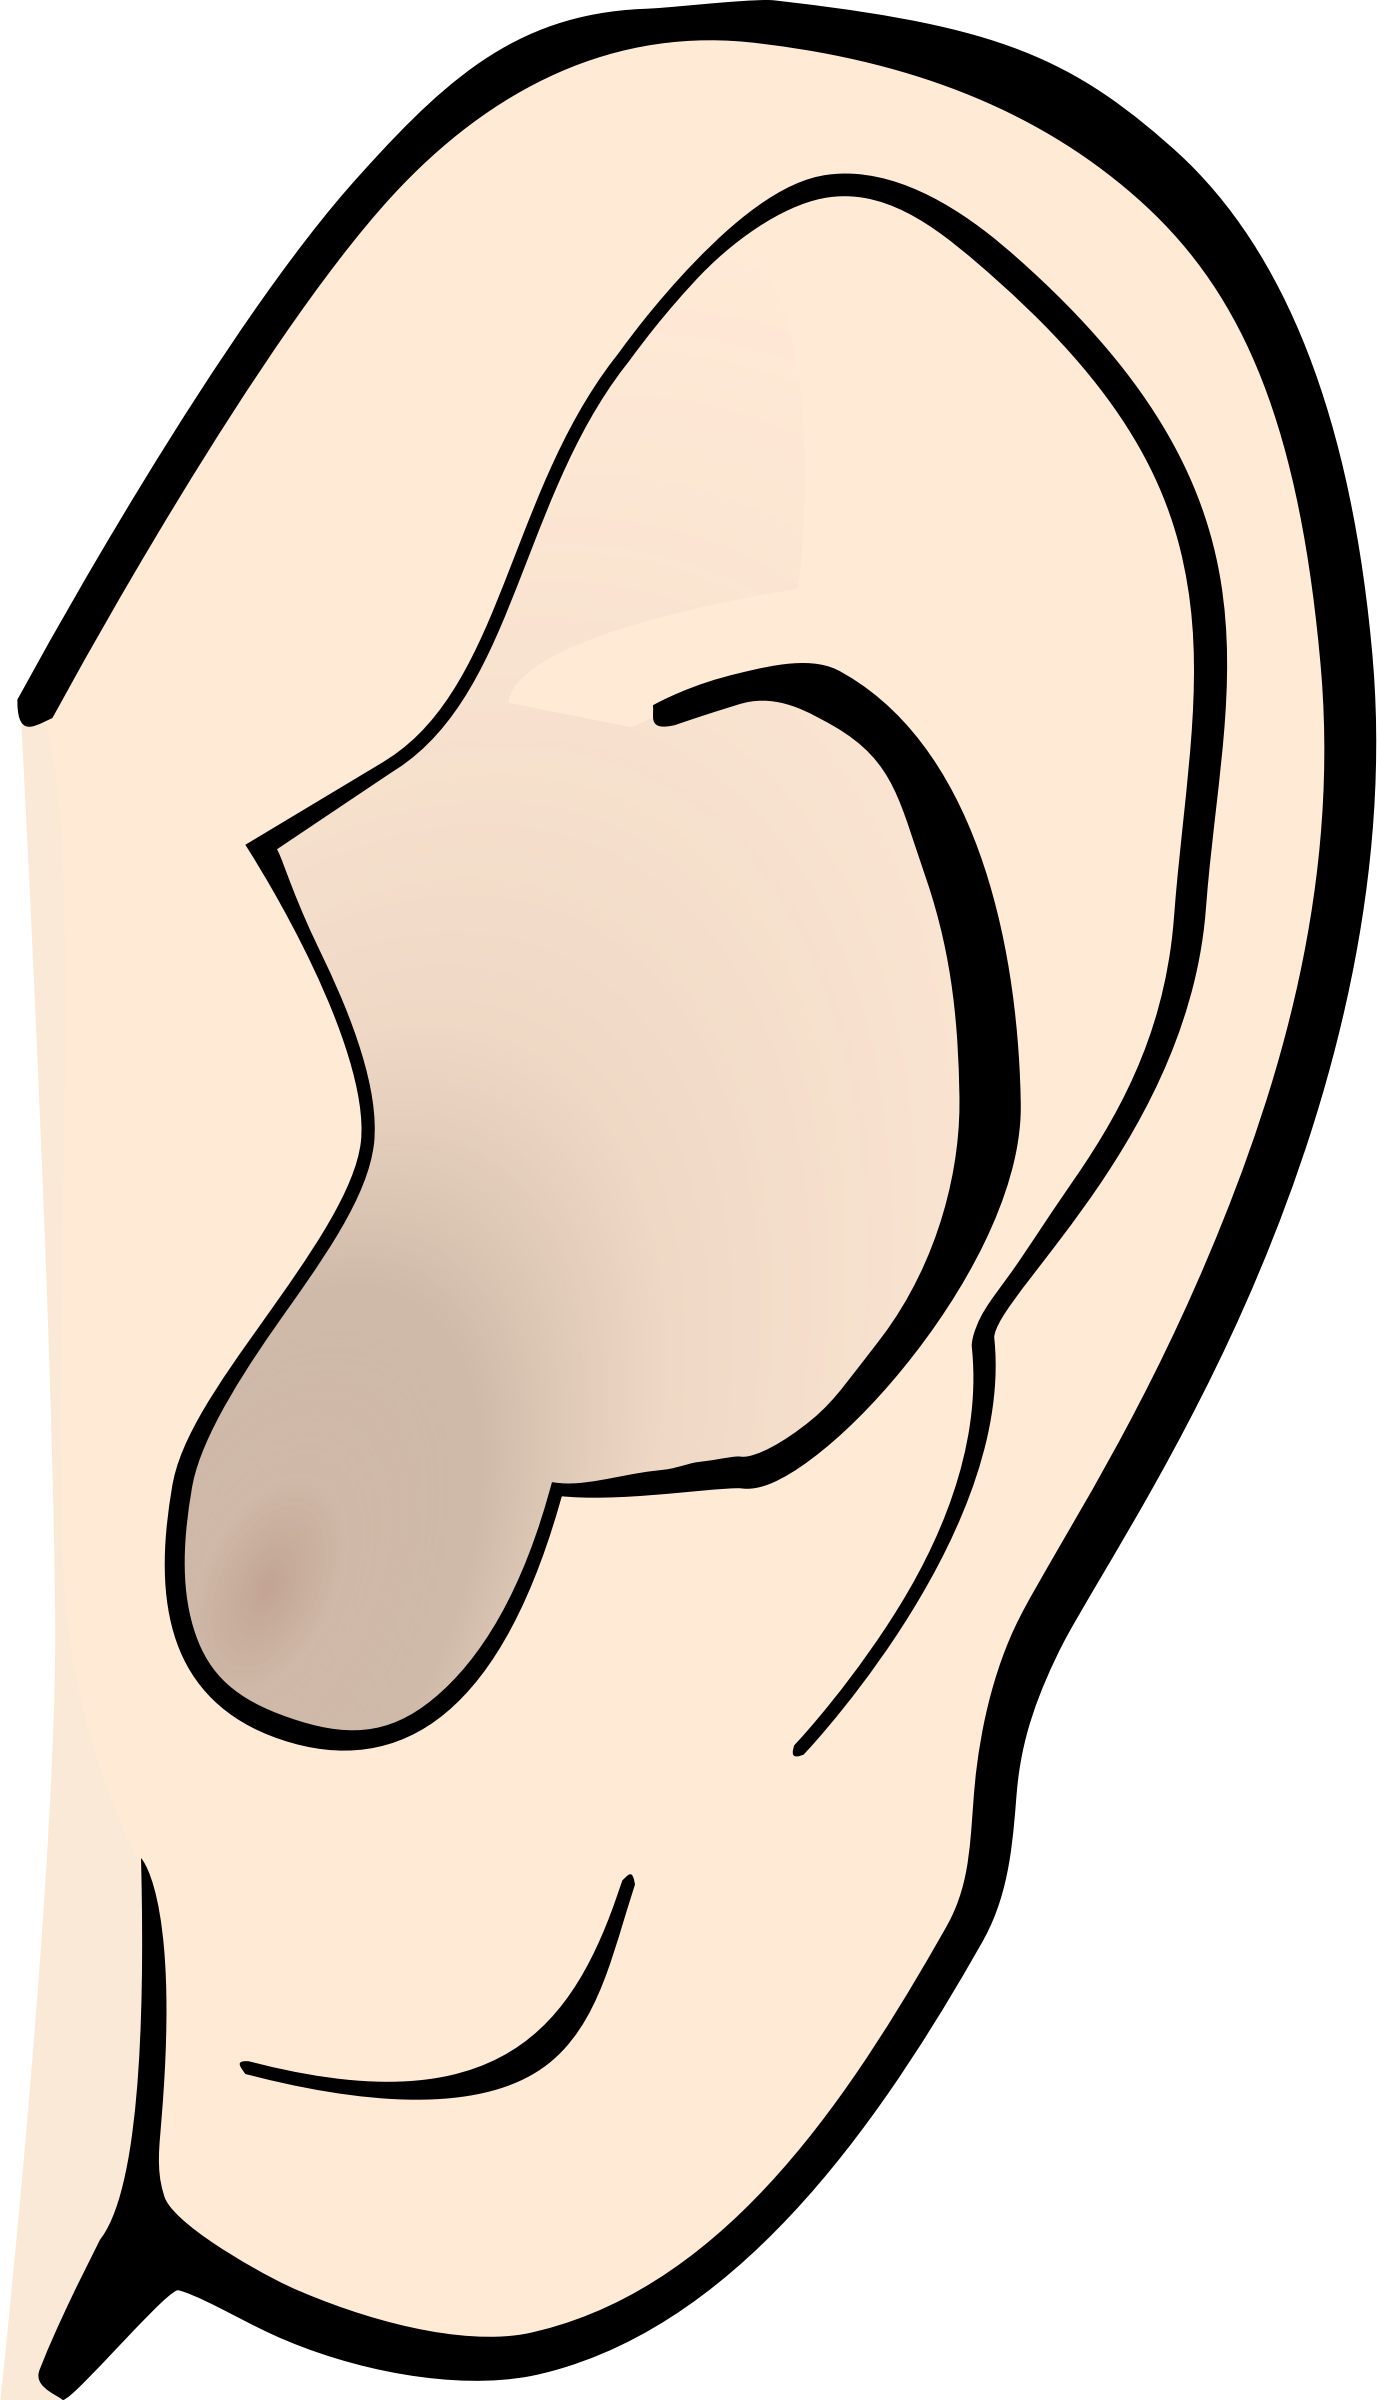 the nosed clipart five senses